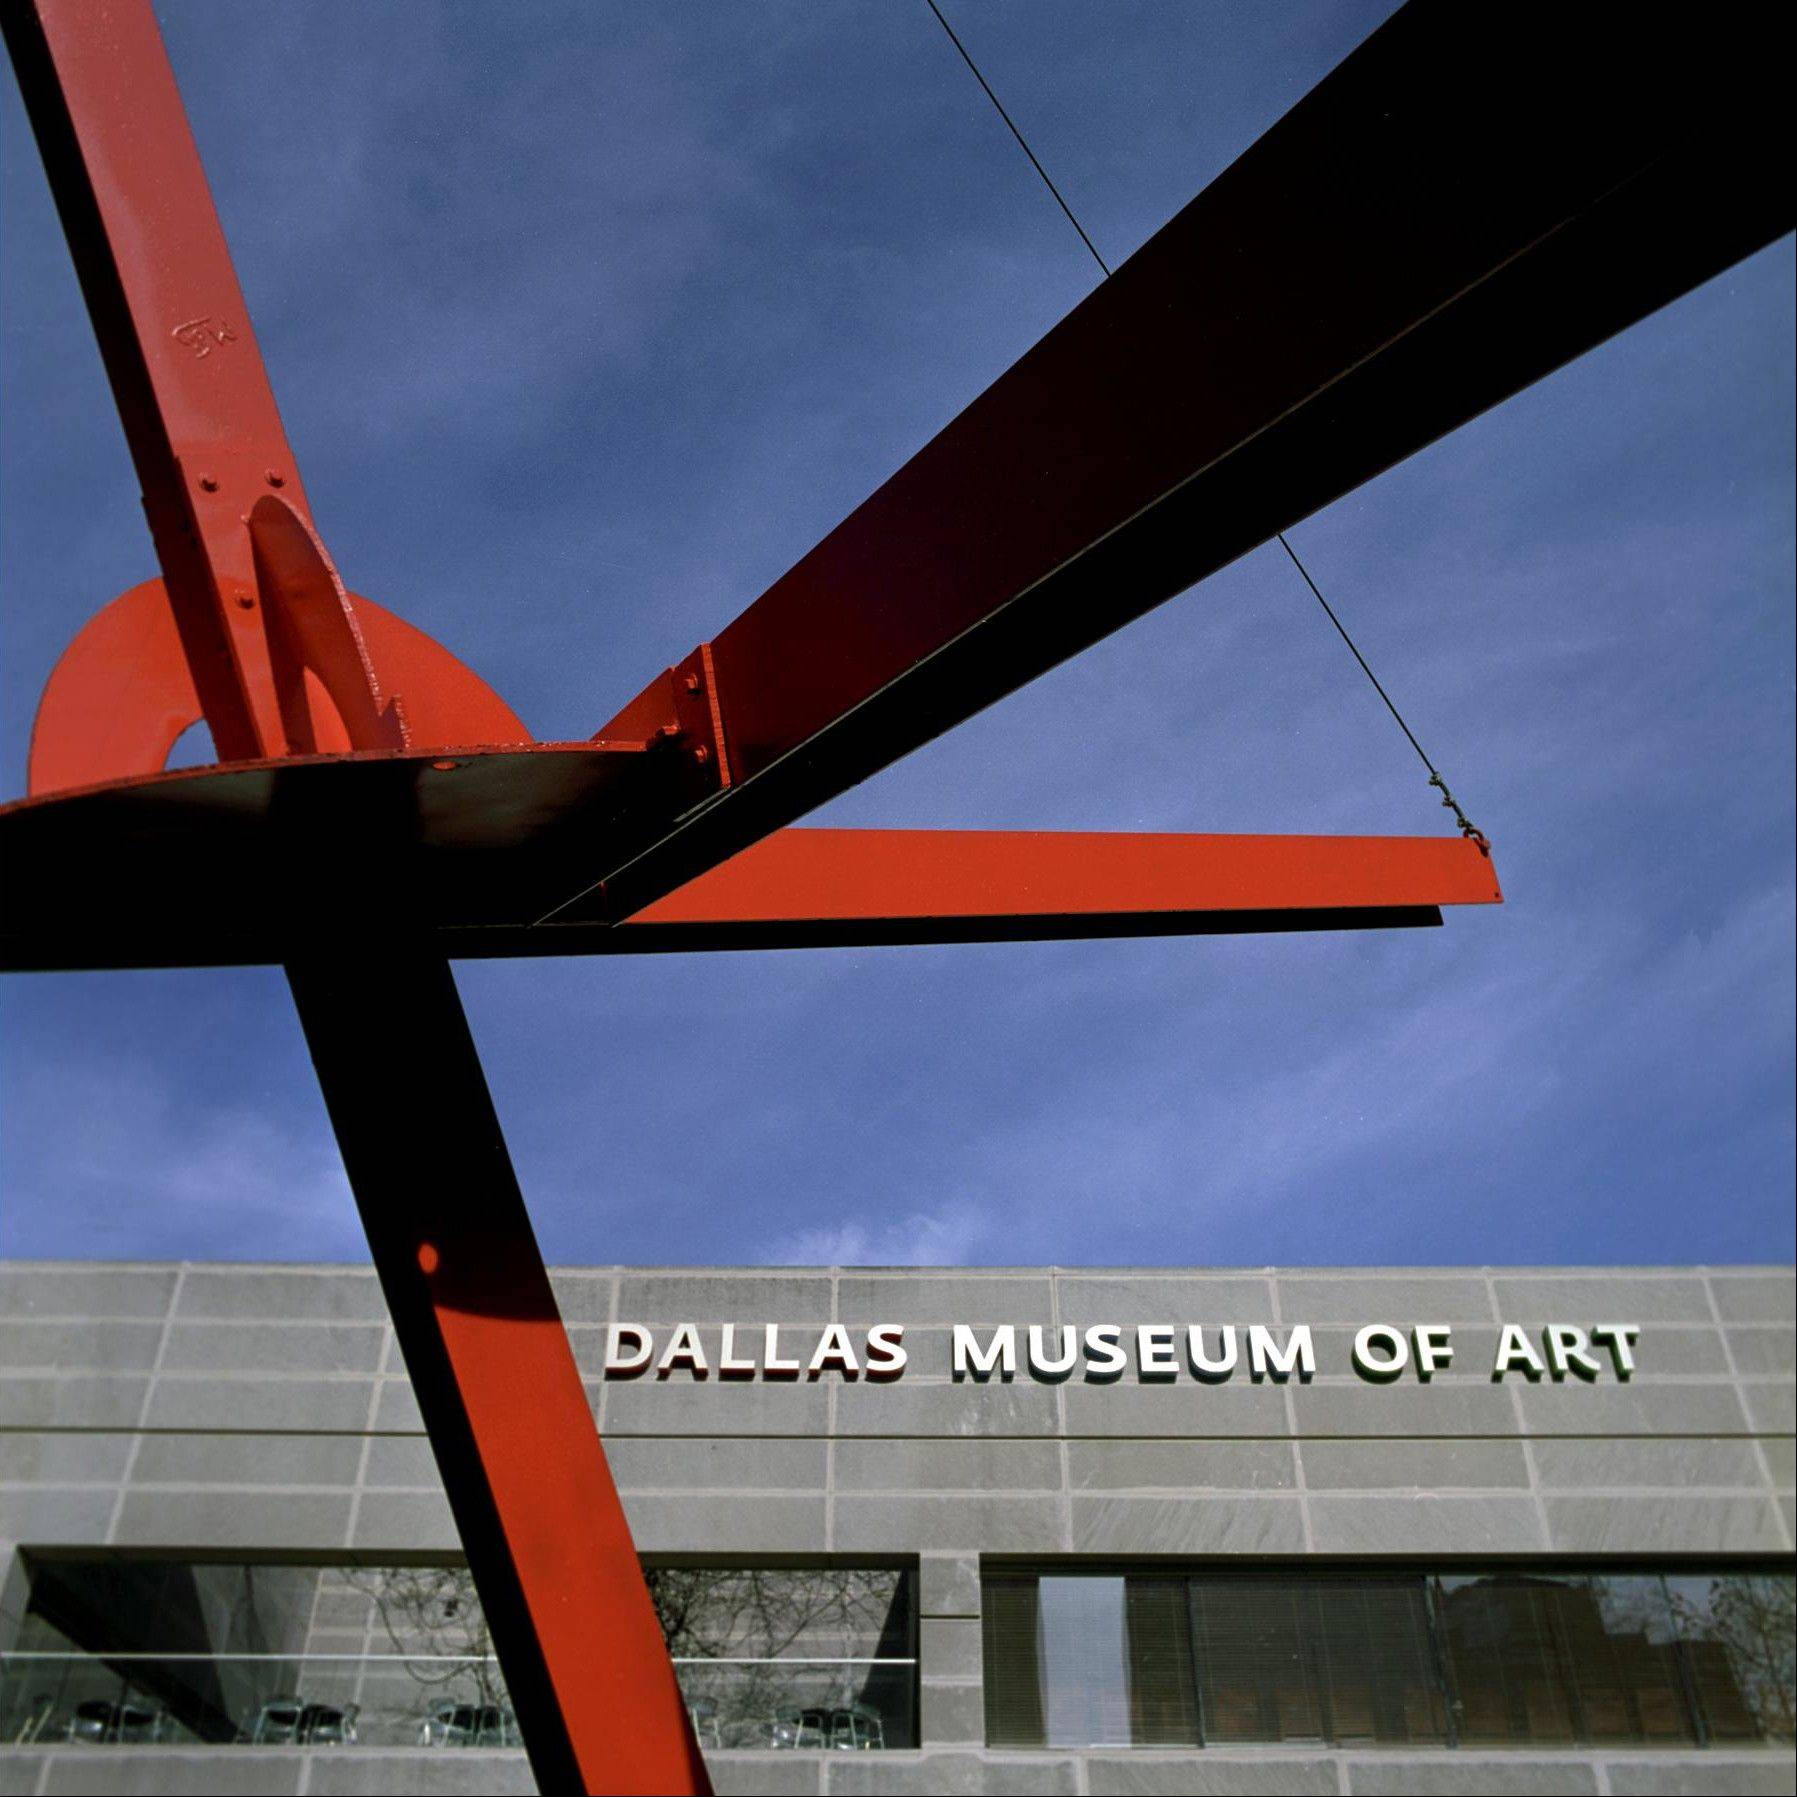 The Dallas Museum of Art offers free admission.